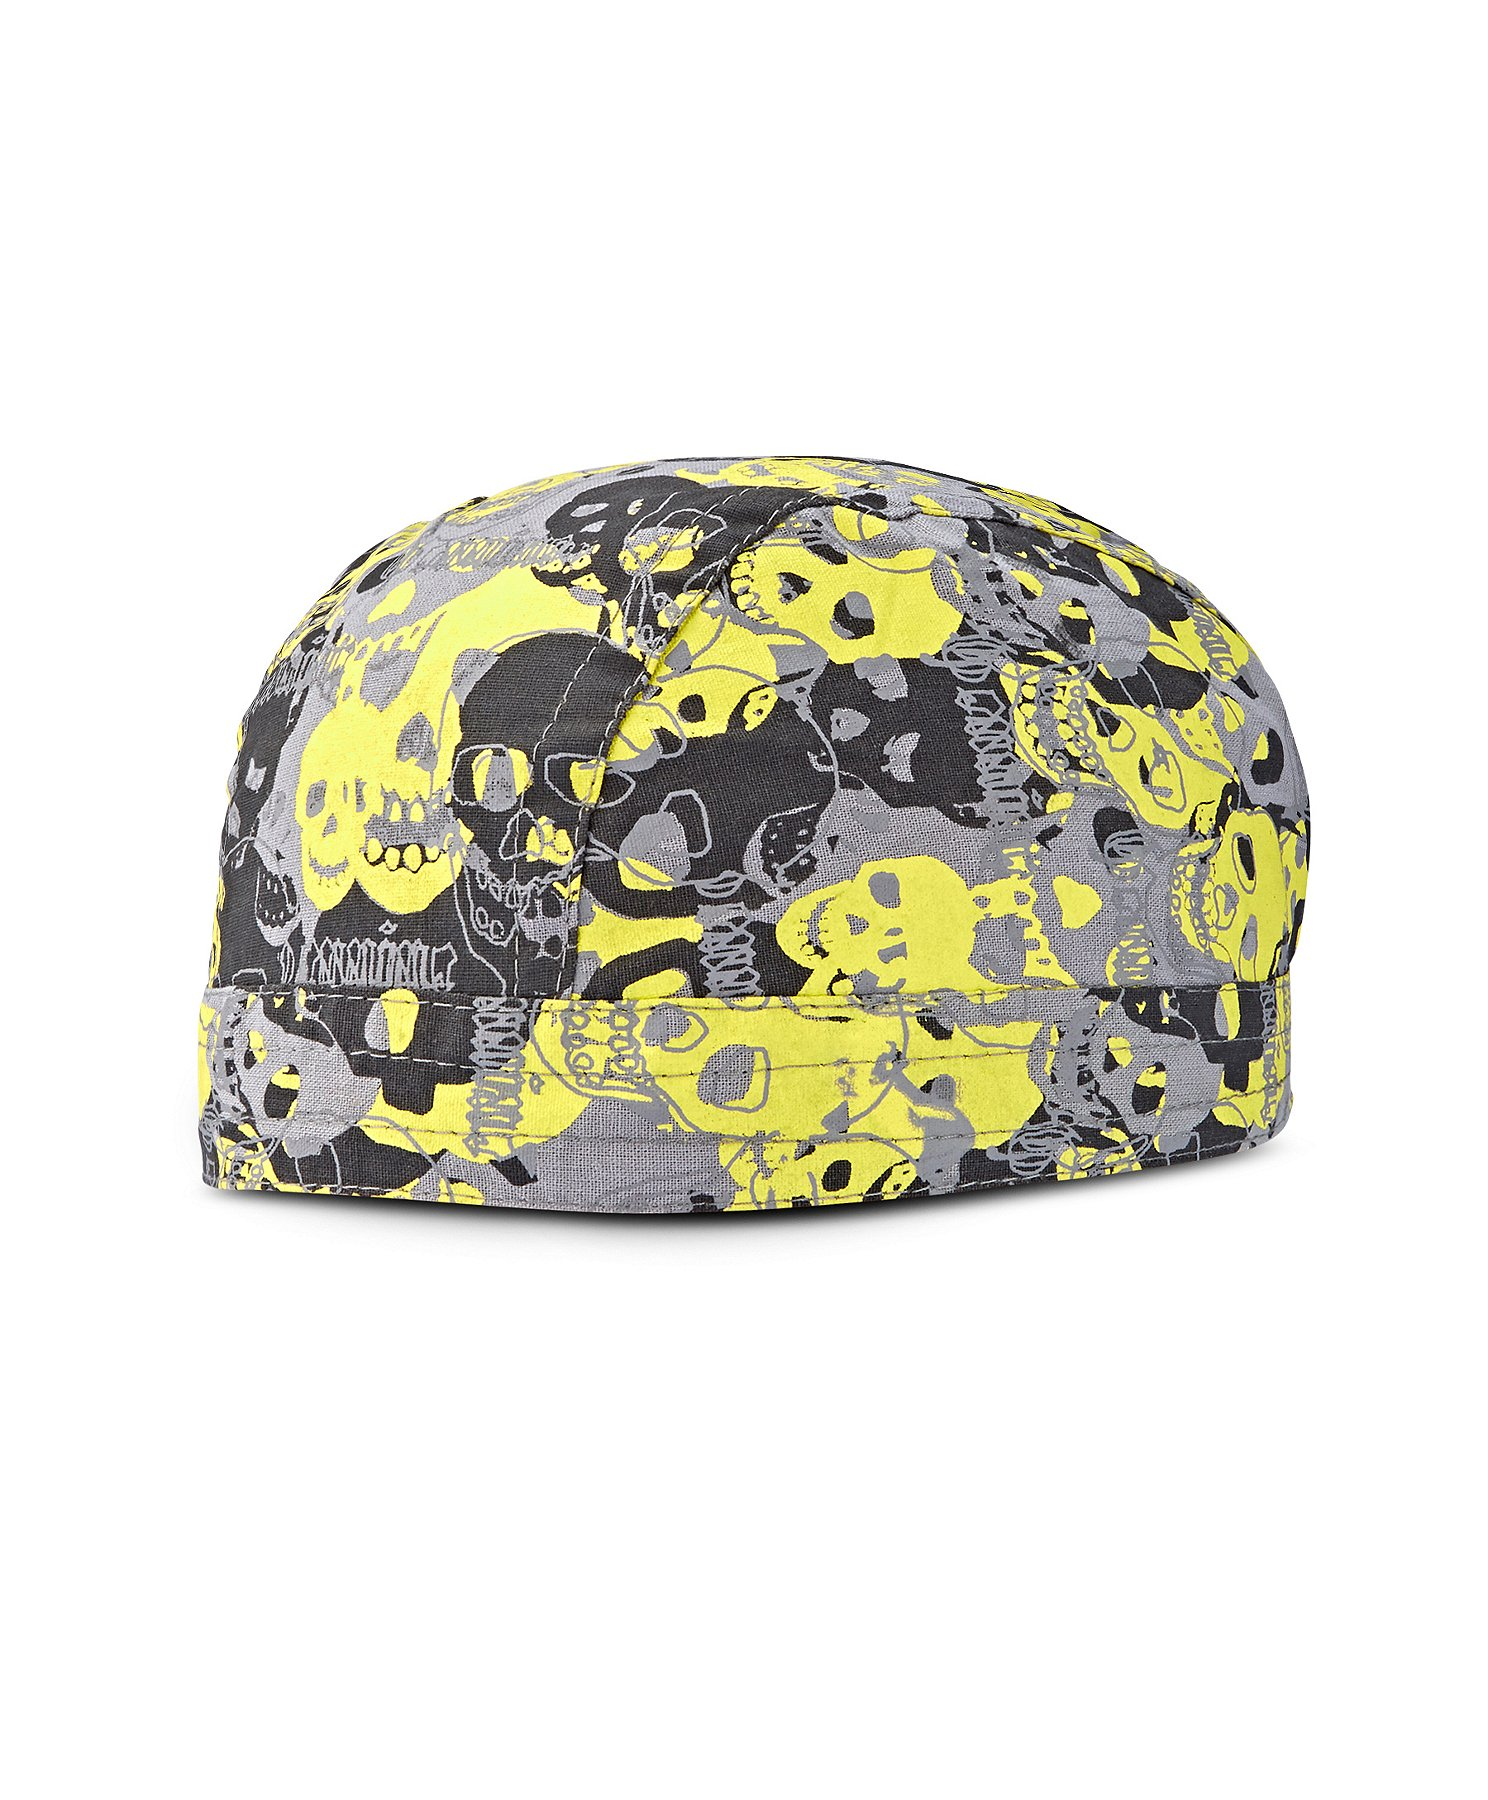 Bandana Fitted Skull on Fire